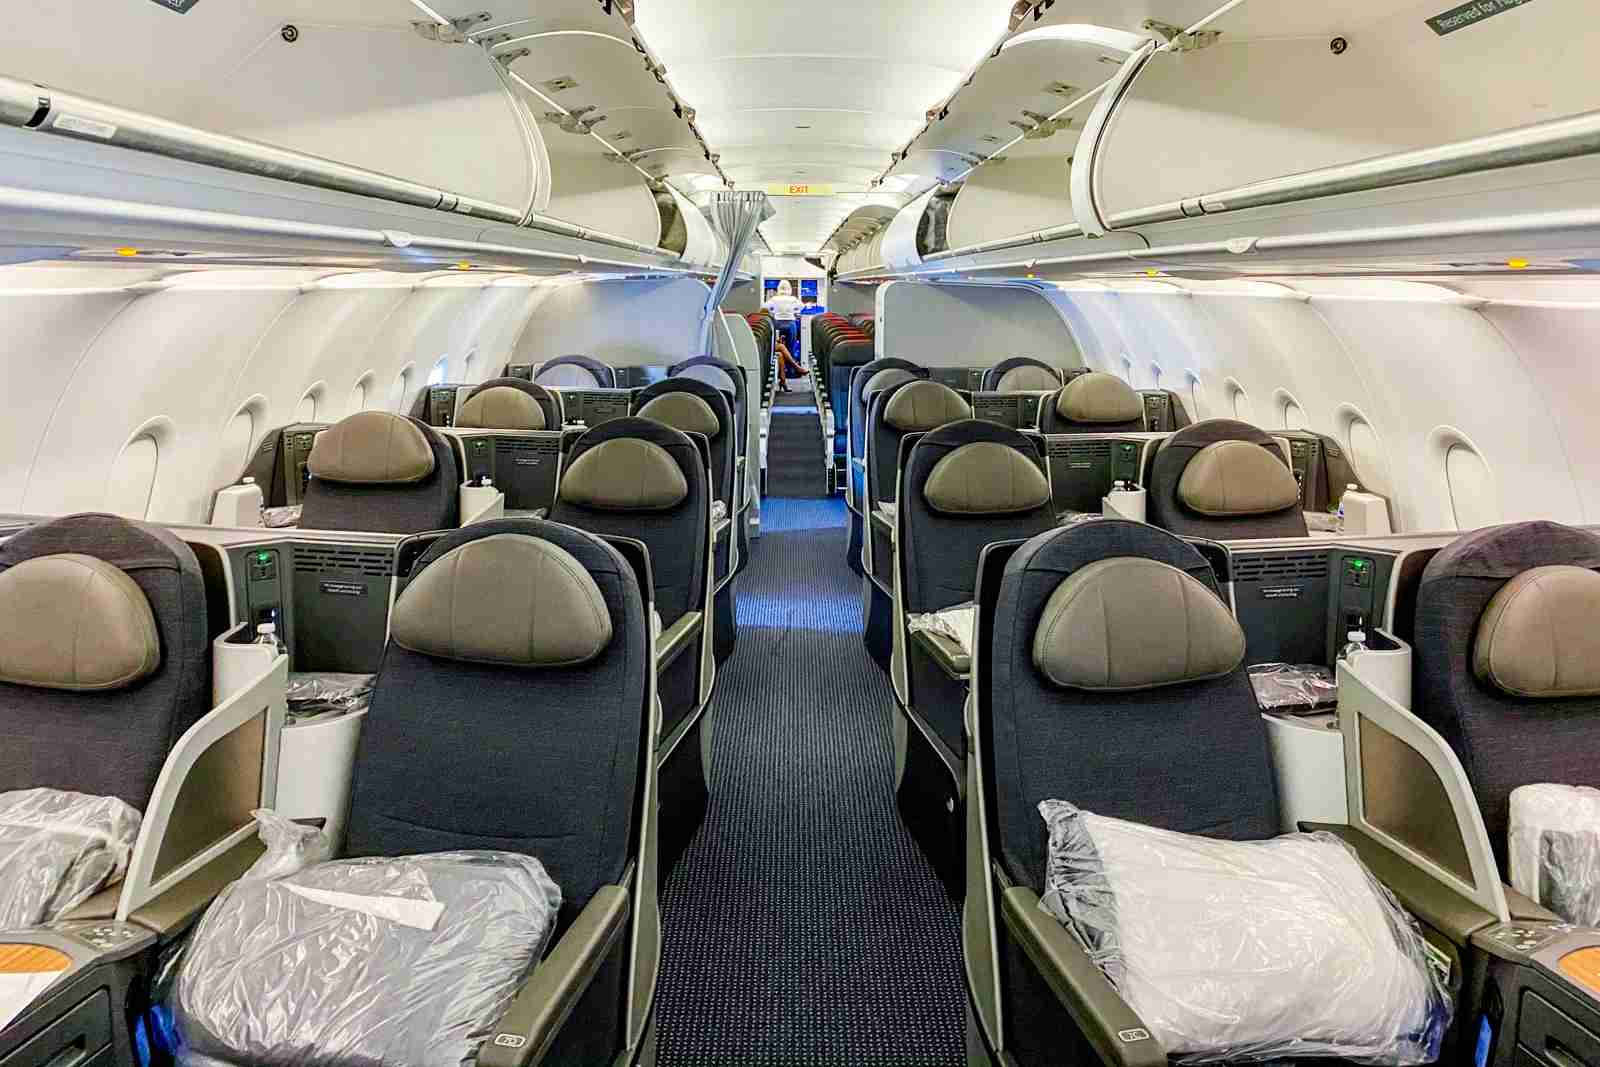 A look at business class